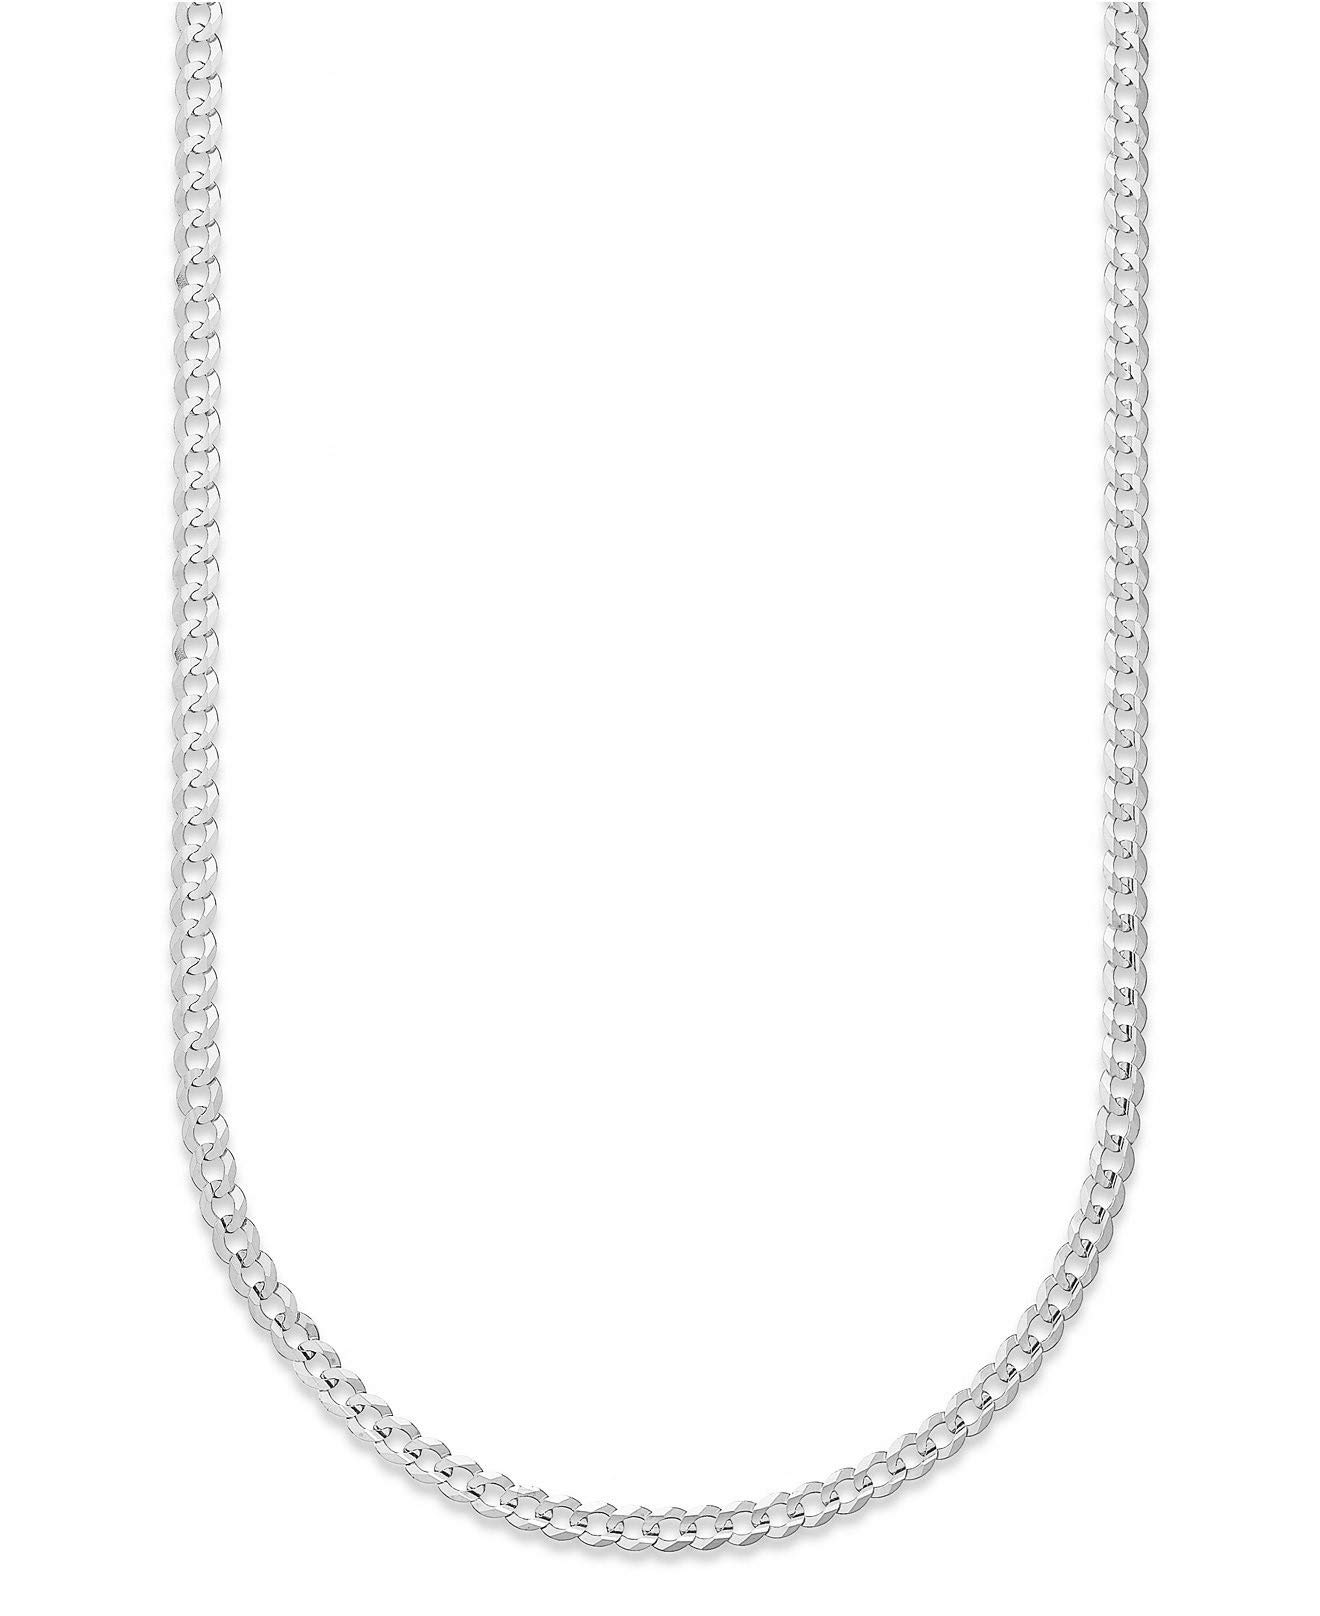 14K Gold 3.5MM Cuban/Curb Link Chain Necklace- Made in Italy- Multiple Lengths available-Yellow, White Or Rose Gold (White, 24)